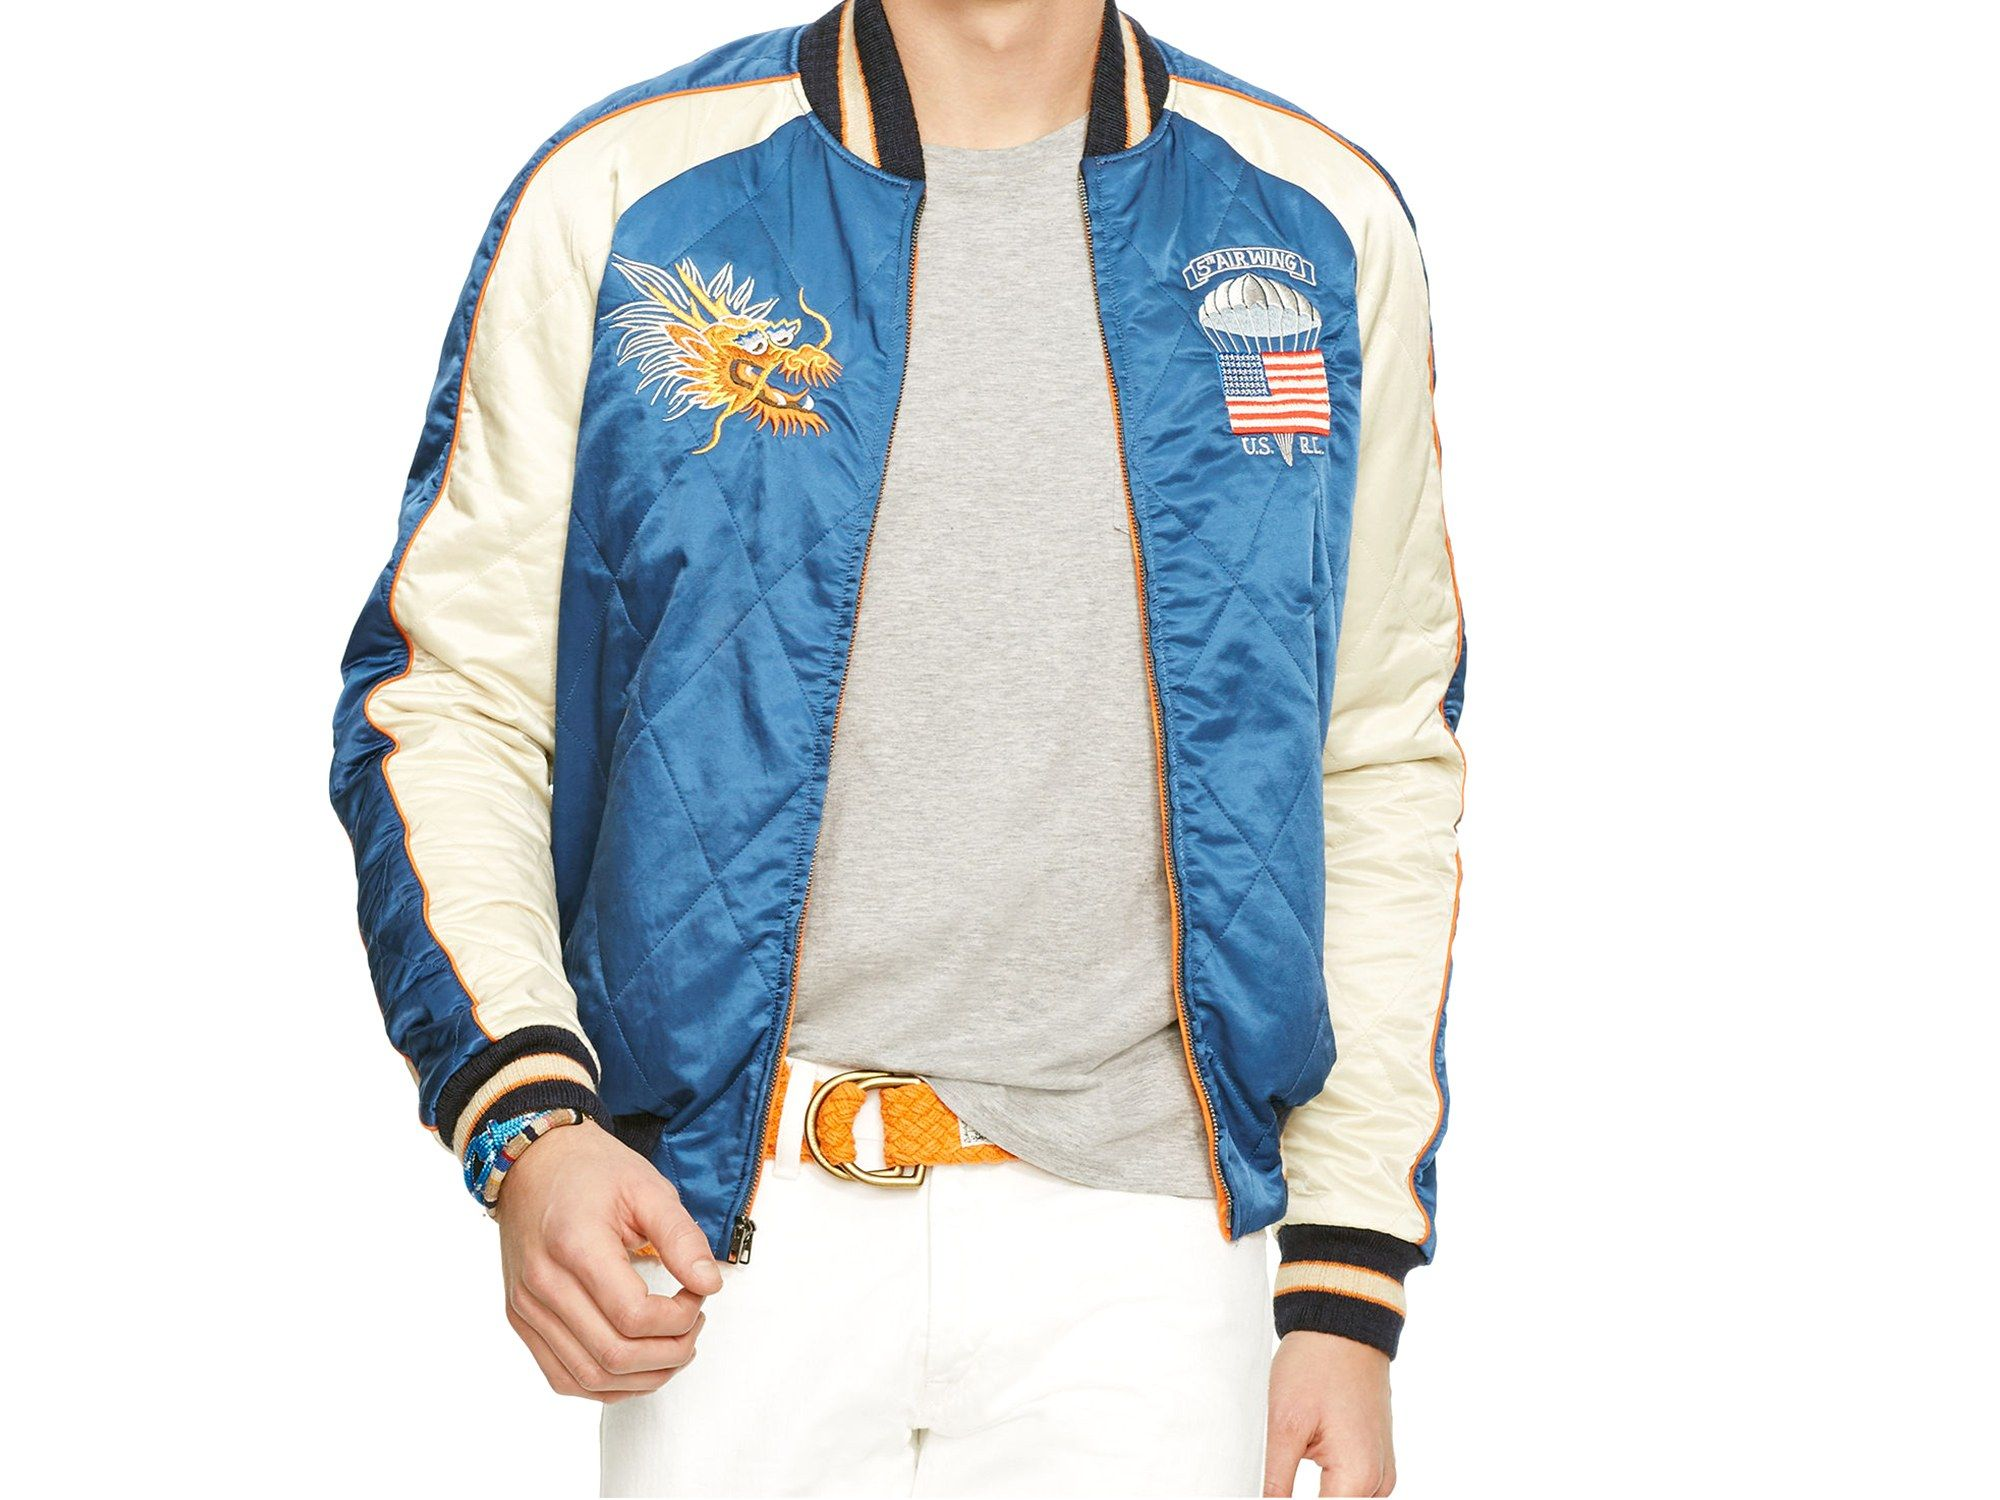 How To Reach Gosling Level Style With One Jacket Baseball Jacket Satin Jackets Baseball Jacket Men [ 1500 x 2000 Pixel ]